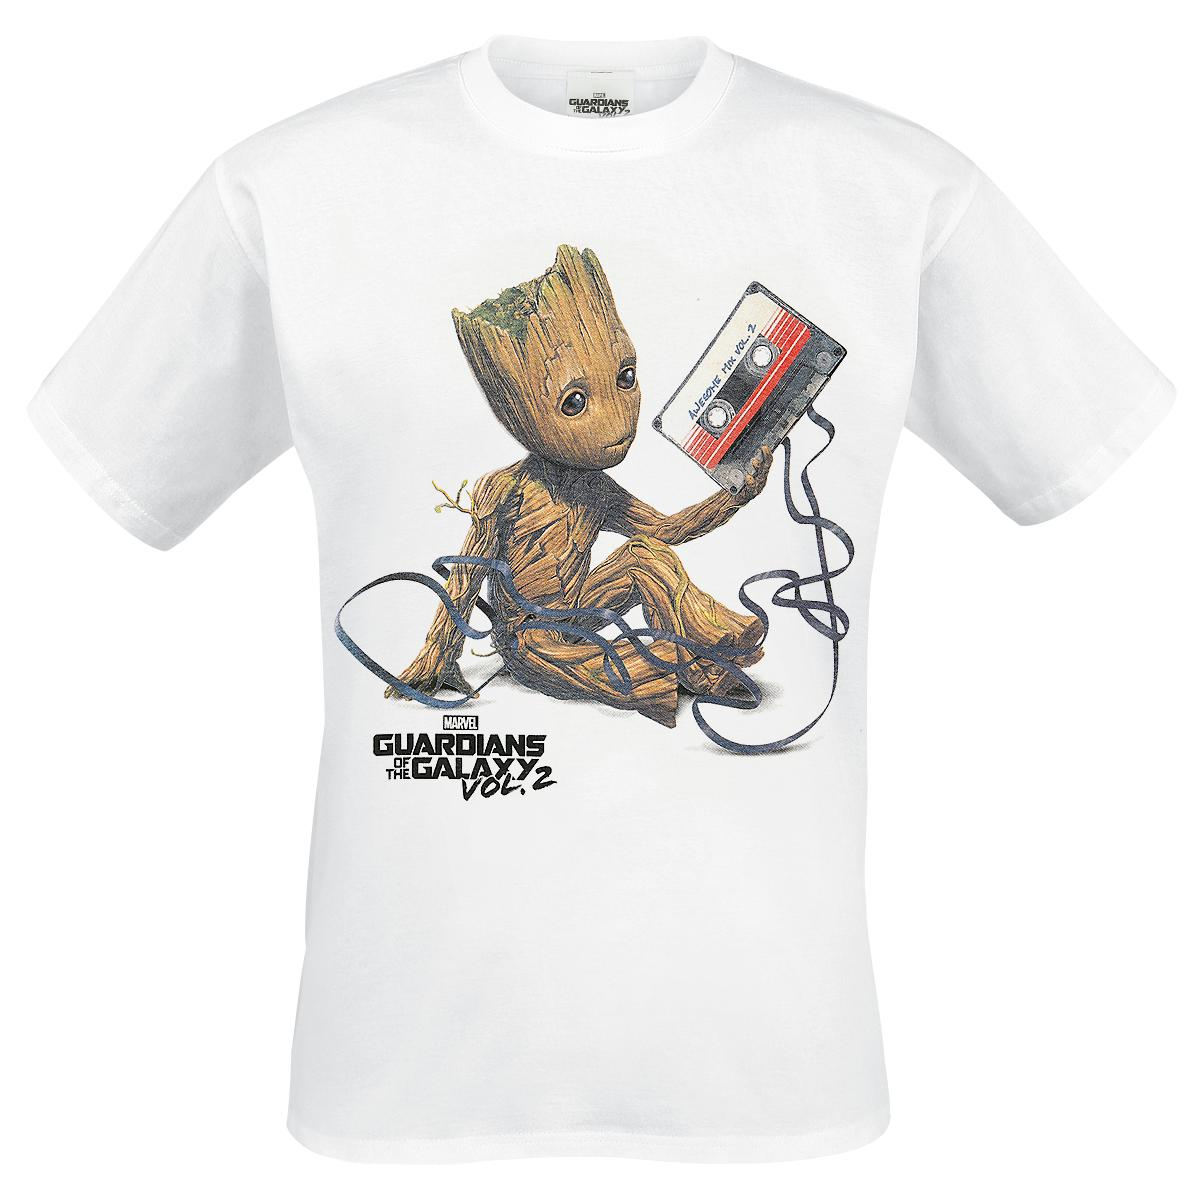 Groot & Tape T-shirt Design tee